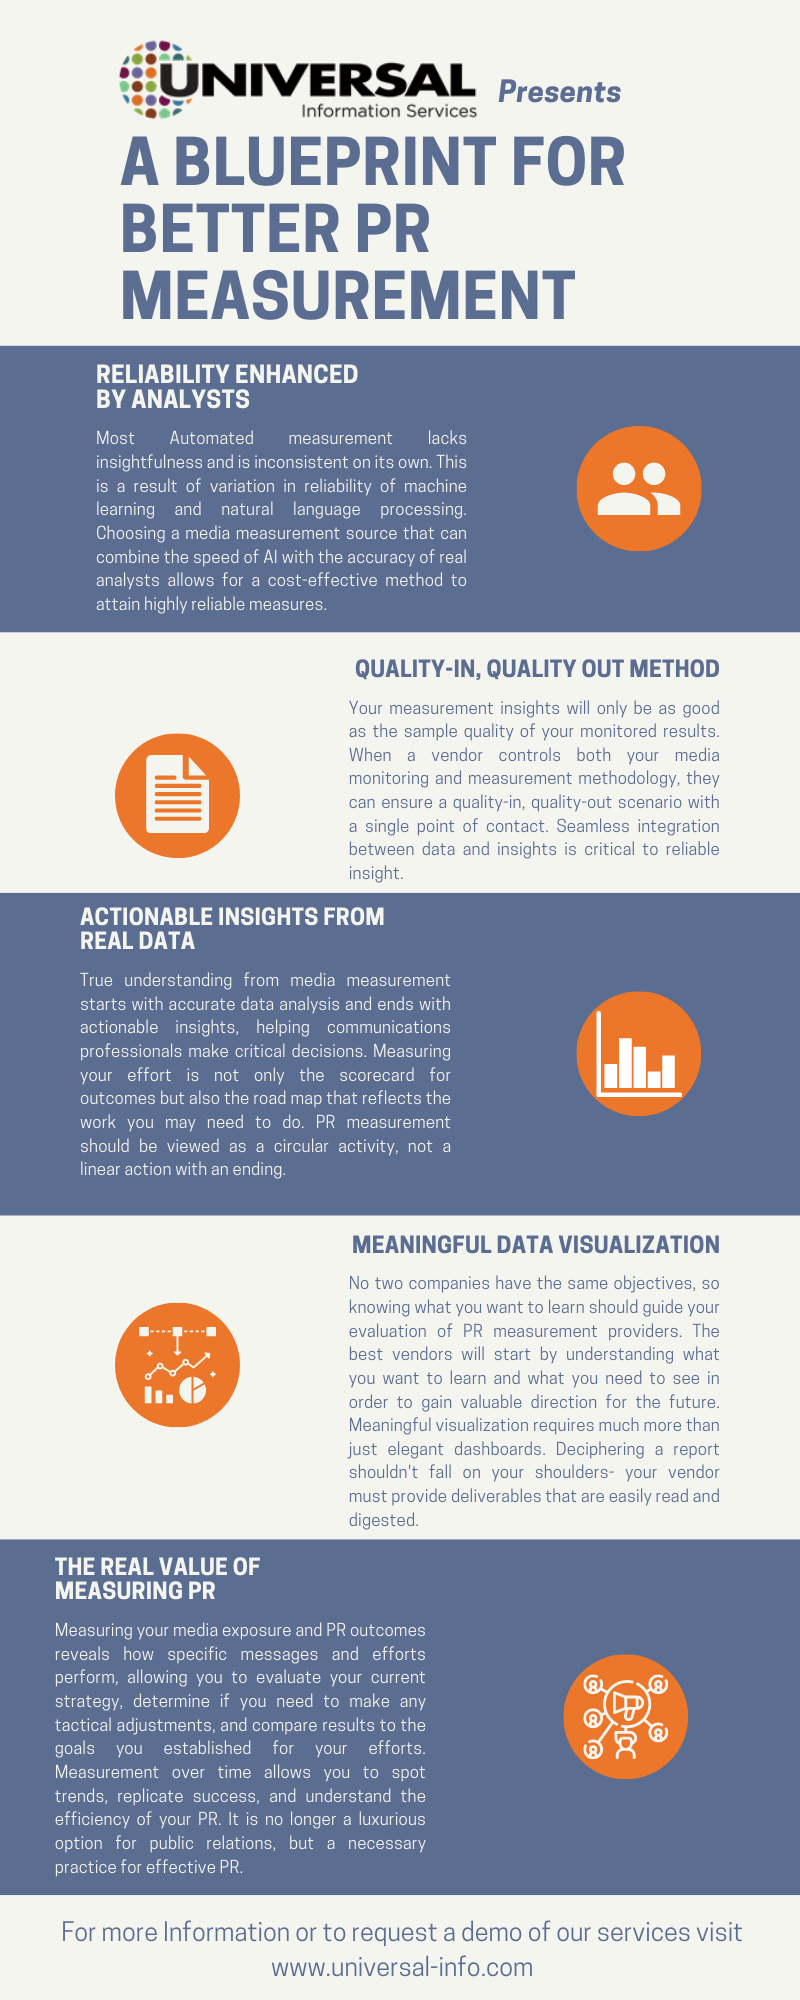 Blueprint for Better PR Measurement from Universal Information Services